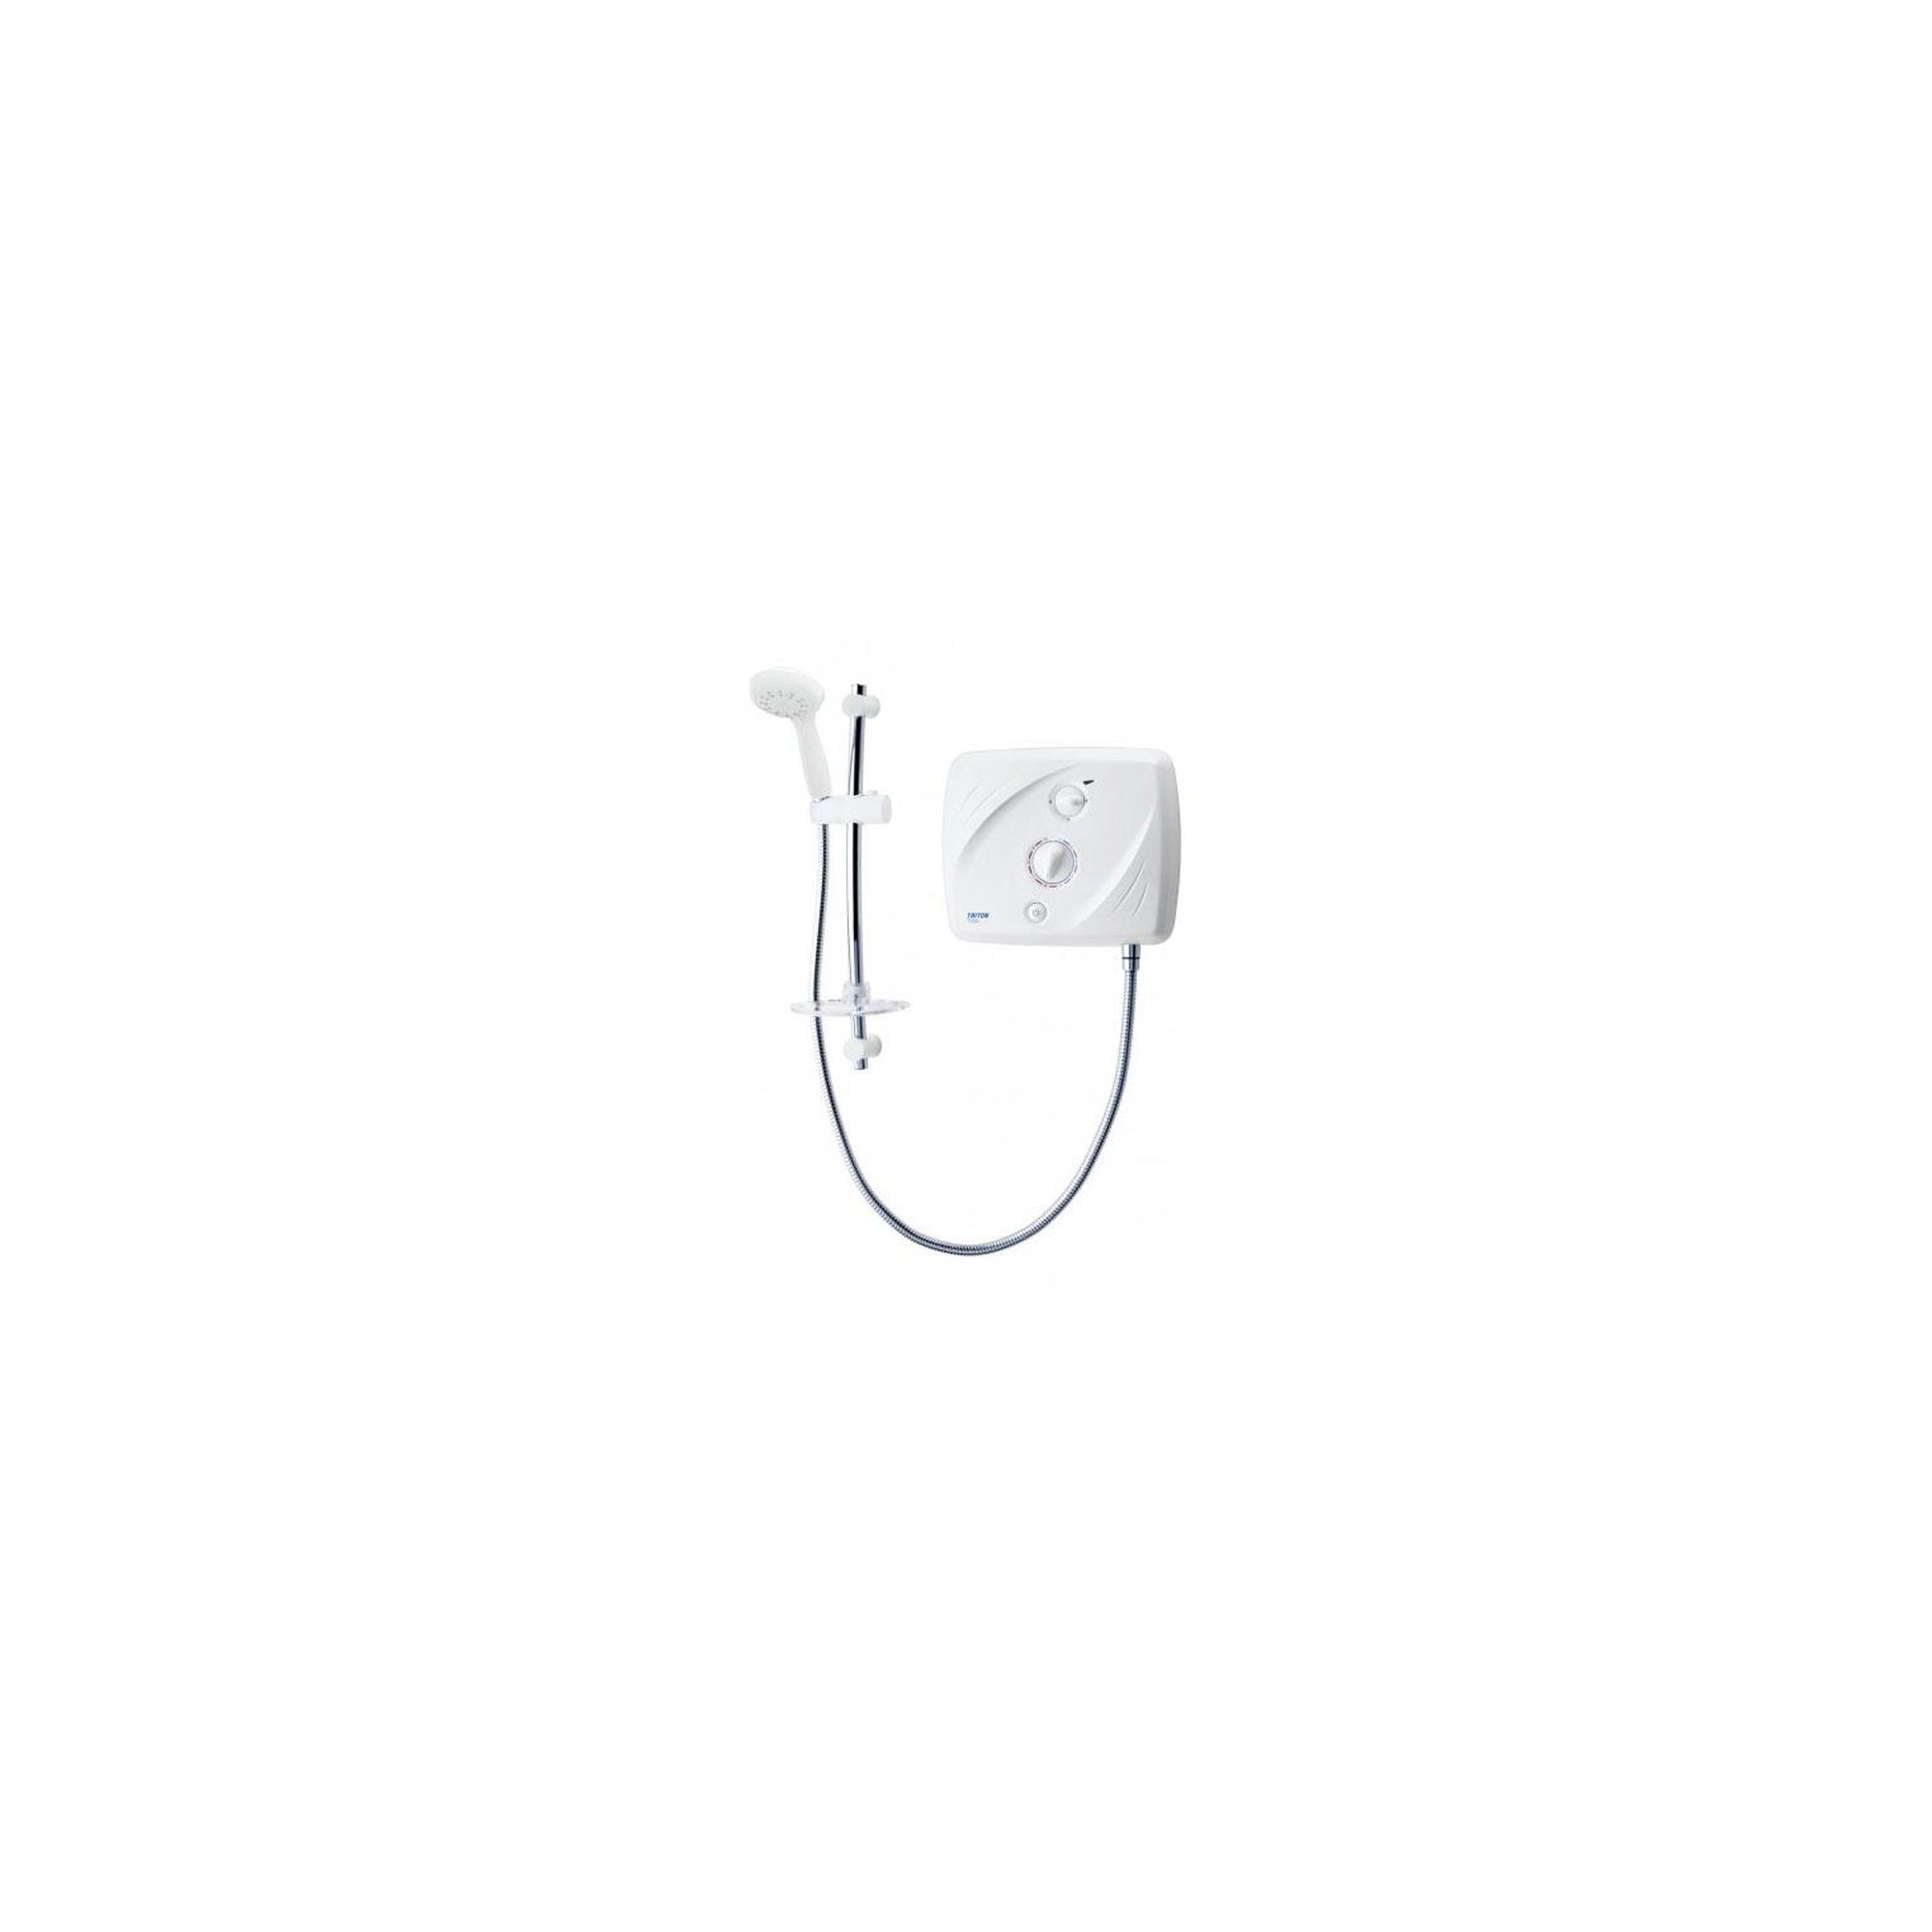 Triton T90xr Pumped Electric Shower White/Chrome 9.5 kW at Tesco Direct